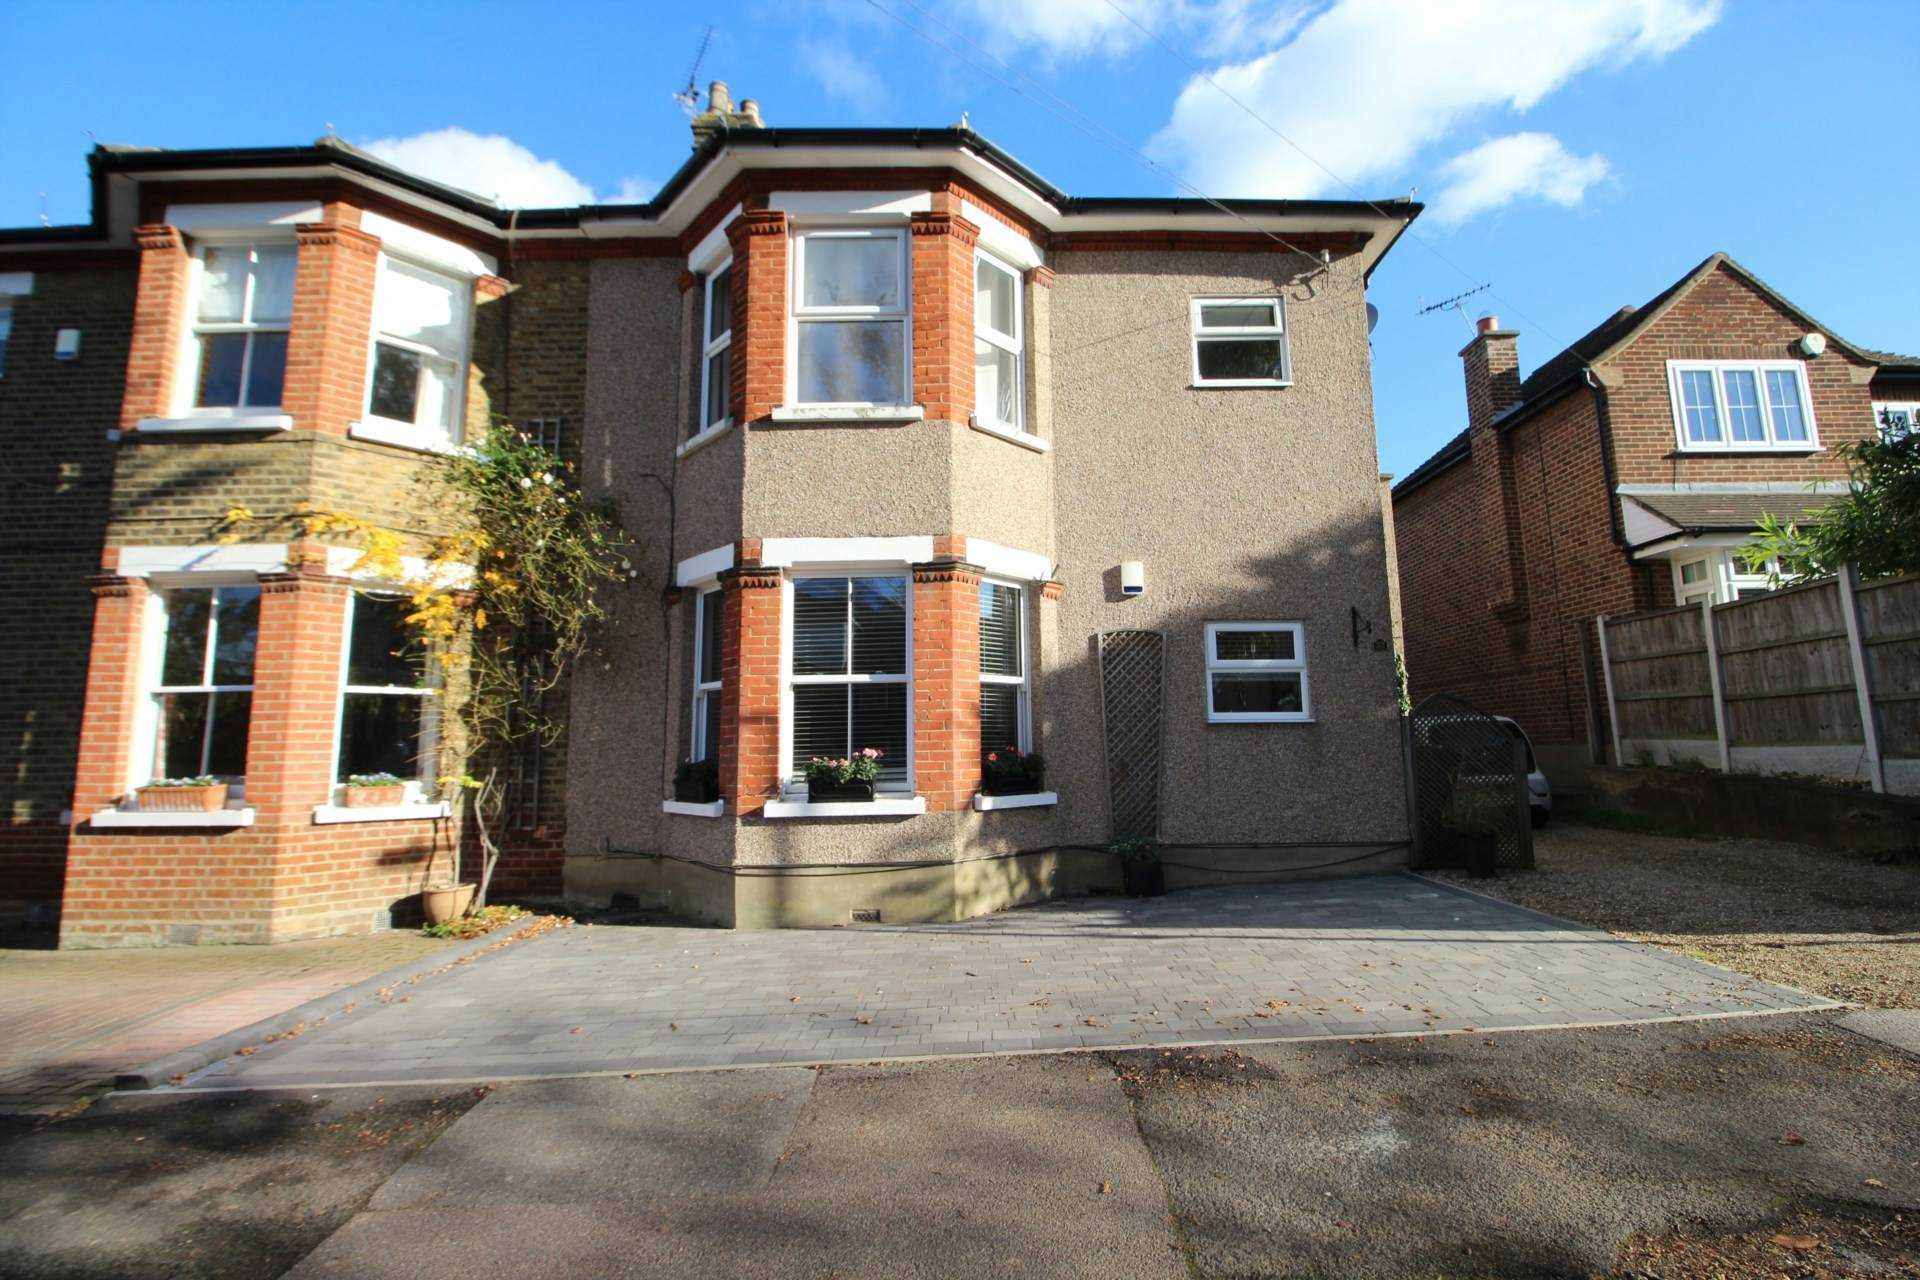 Warley Mount, Brentwood, Image 2